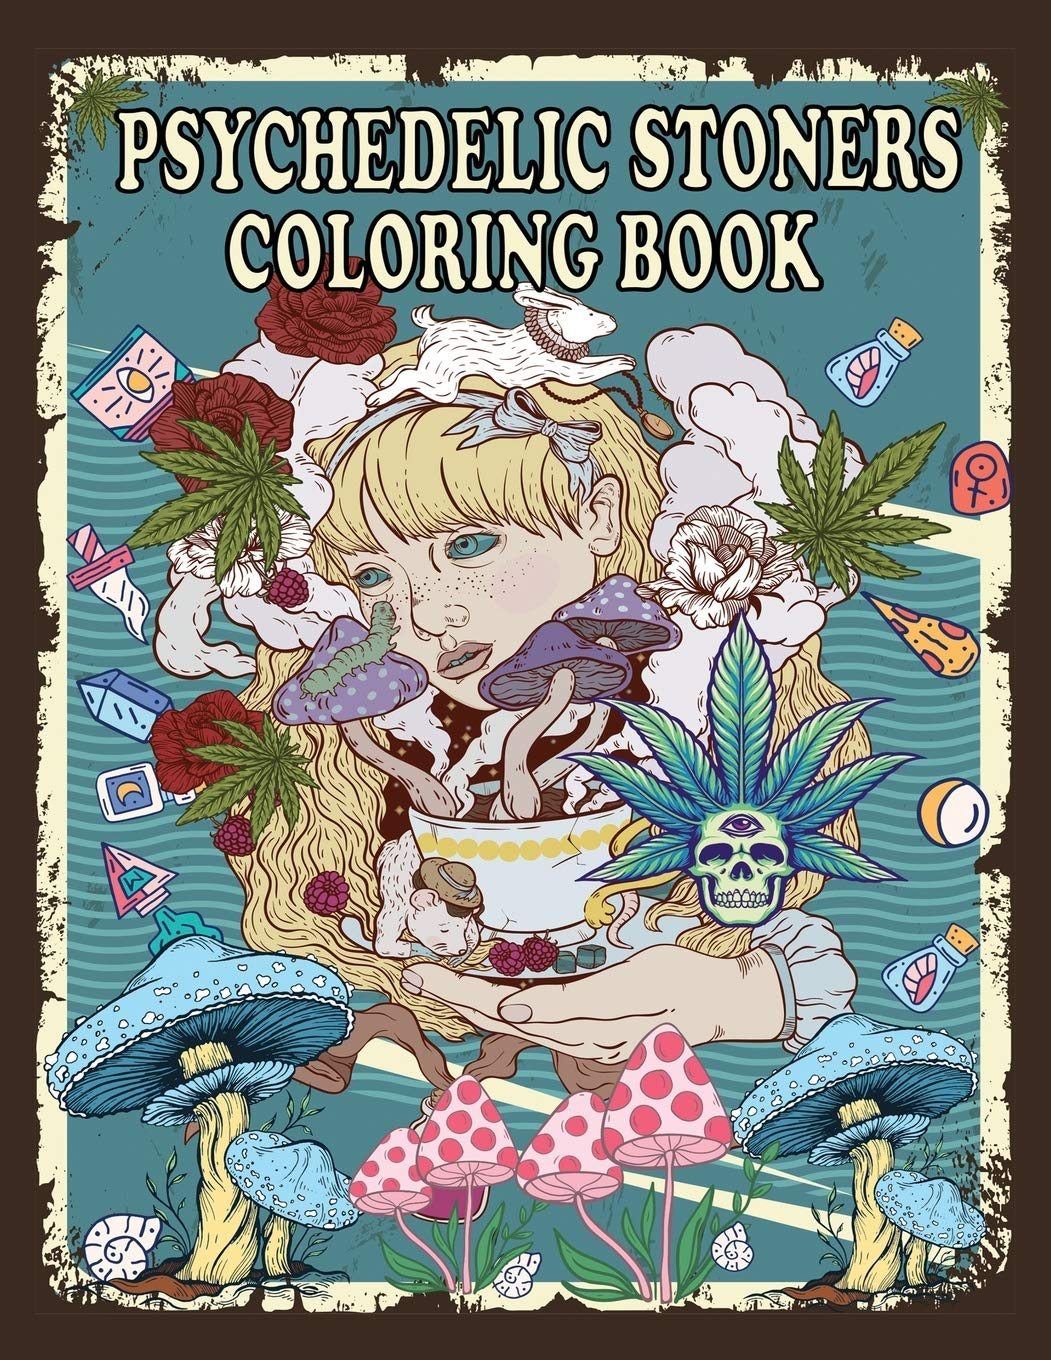 - Amazon.com: Psychedelic Stoners Coloring Book: An Adult Coloring